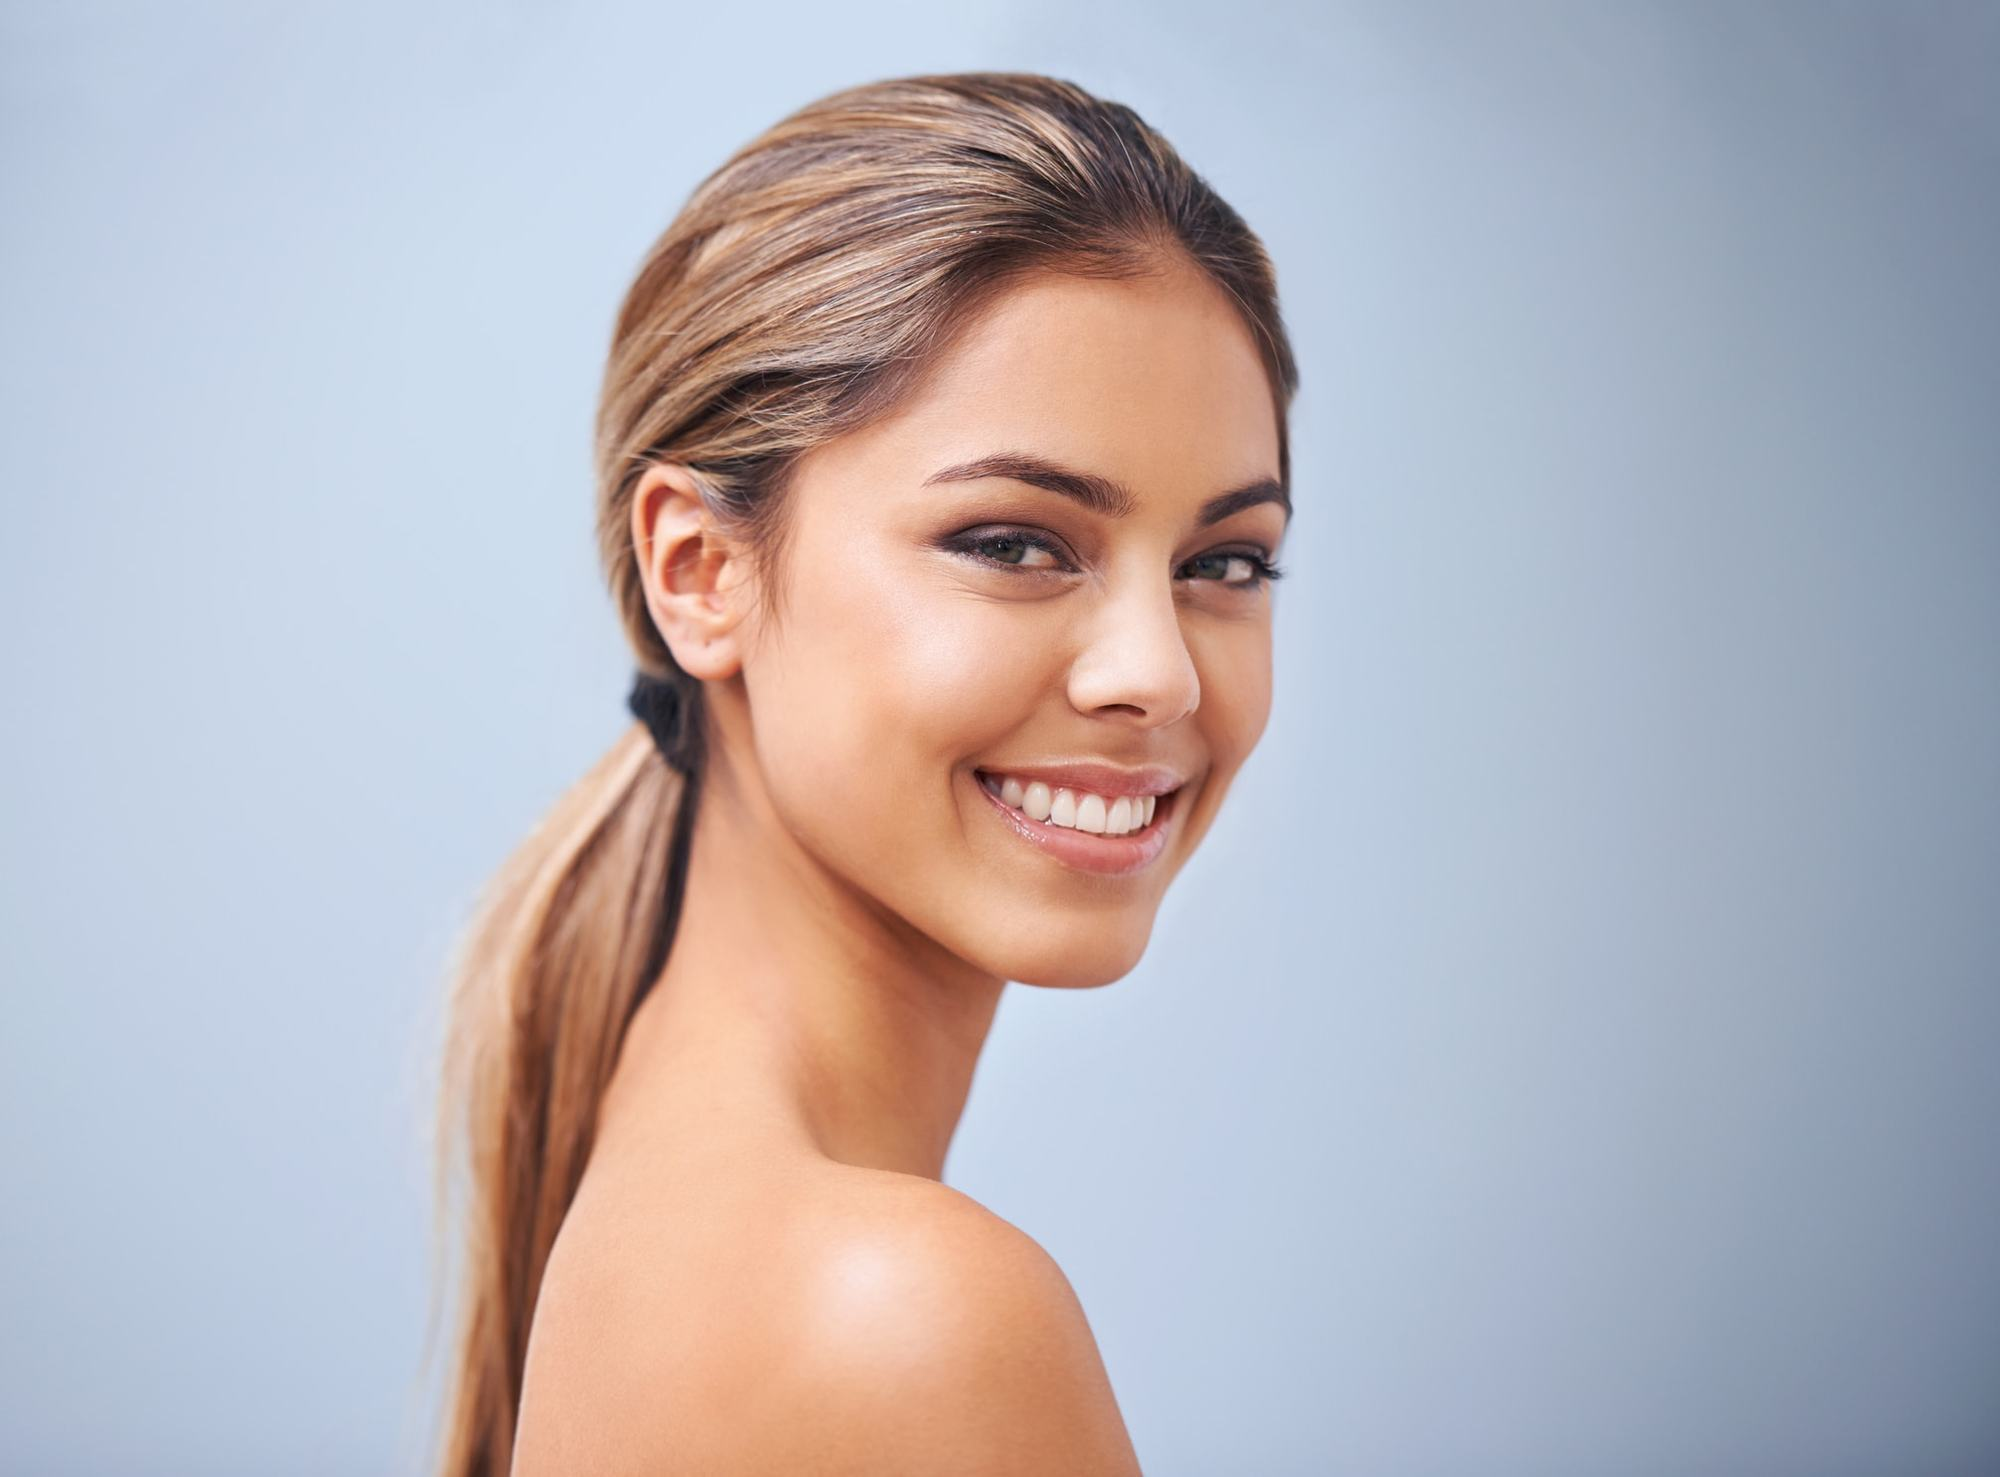 15 Super Quick and Easy Hairstyles for Greasy Hair